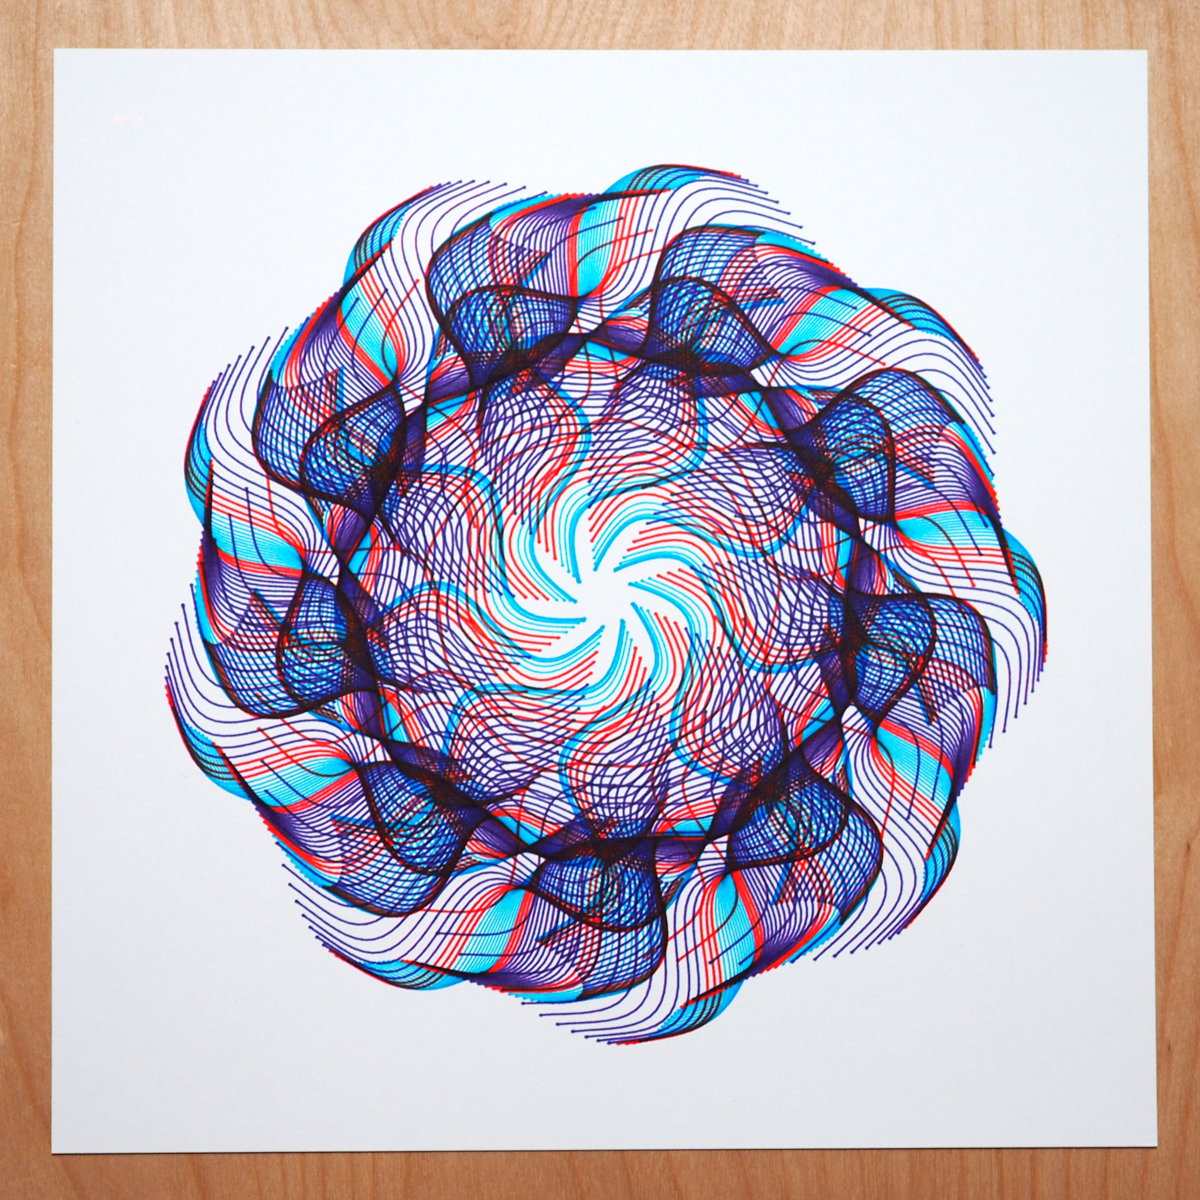 radial design in blues and red on white paper